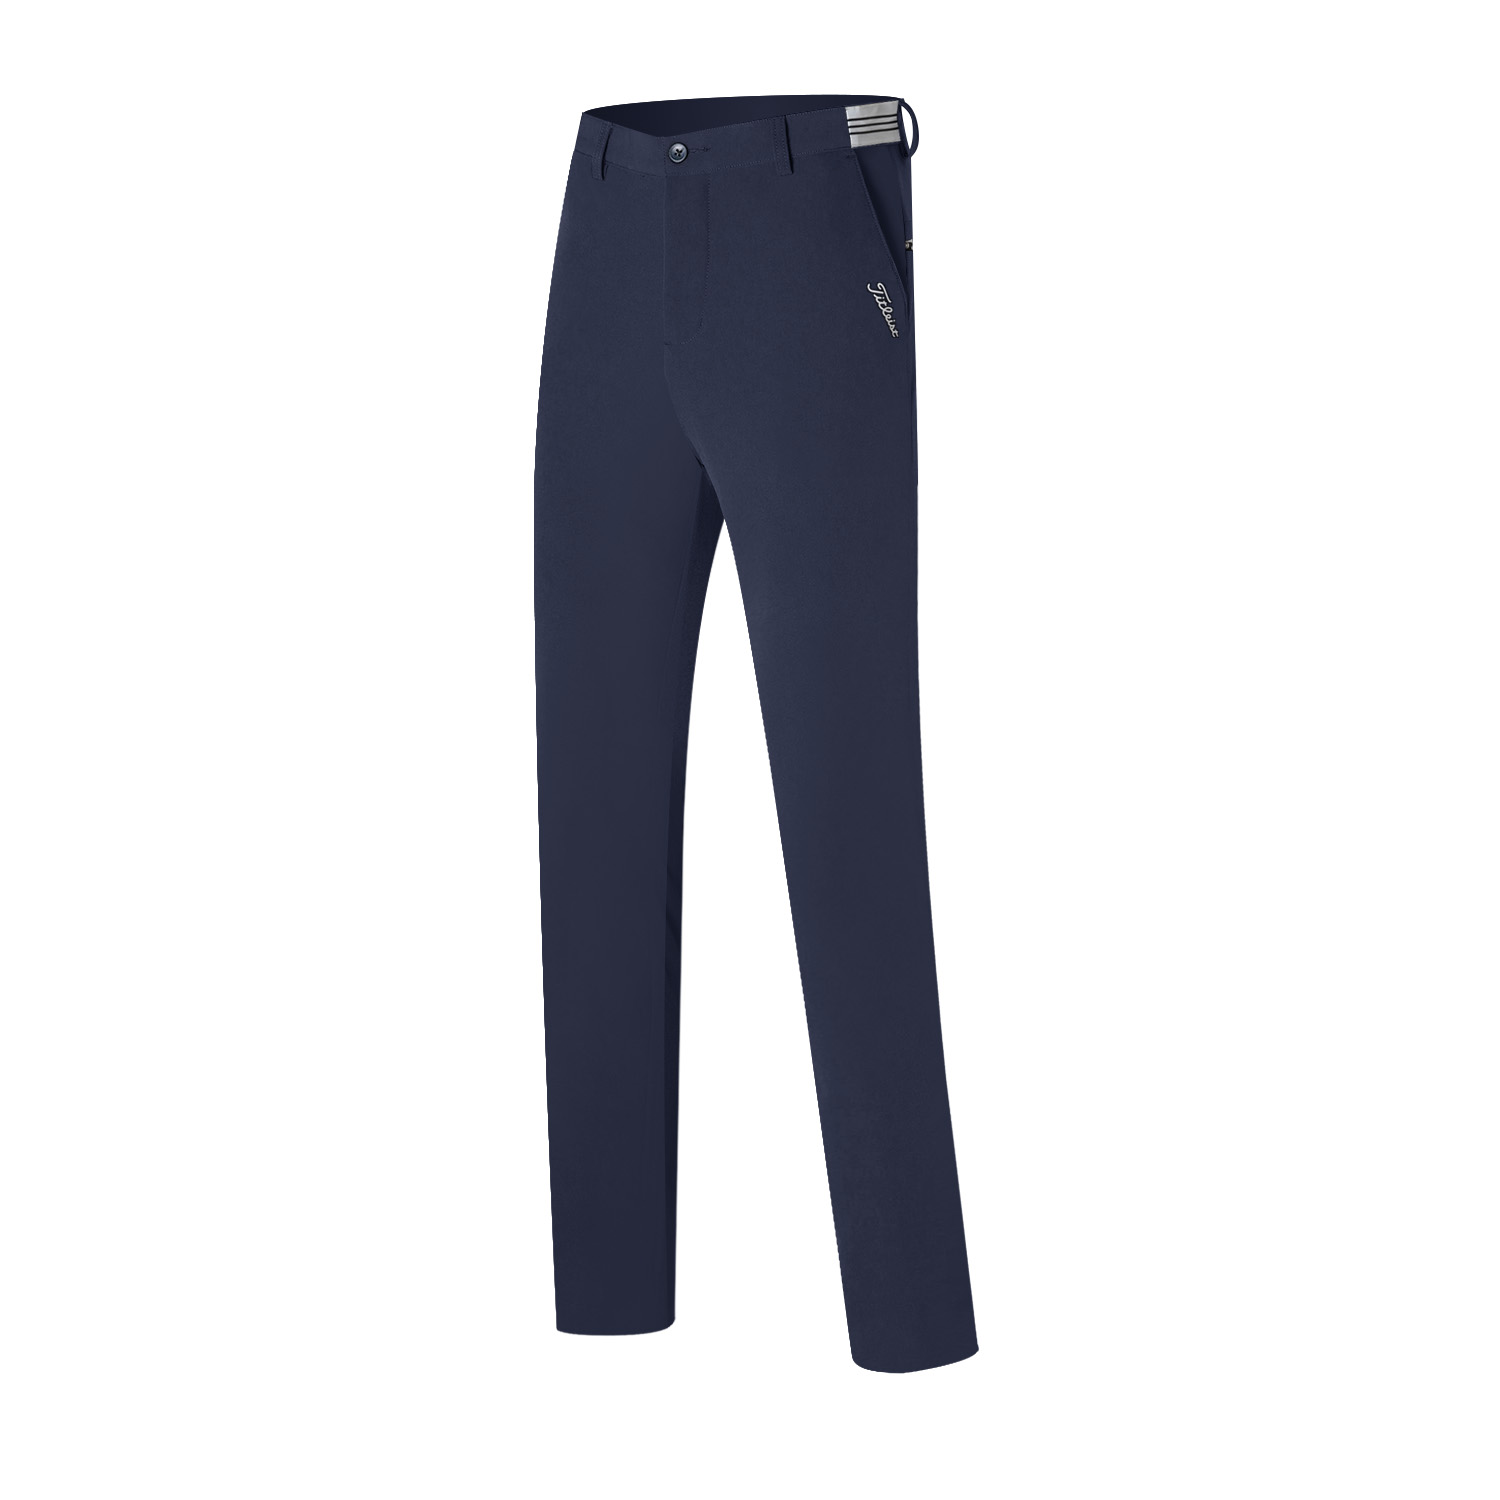 Autumn 2021 New Men's Golf Pants